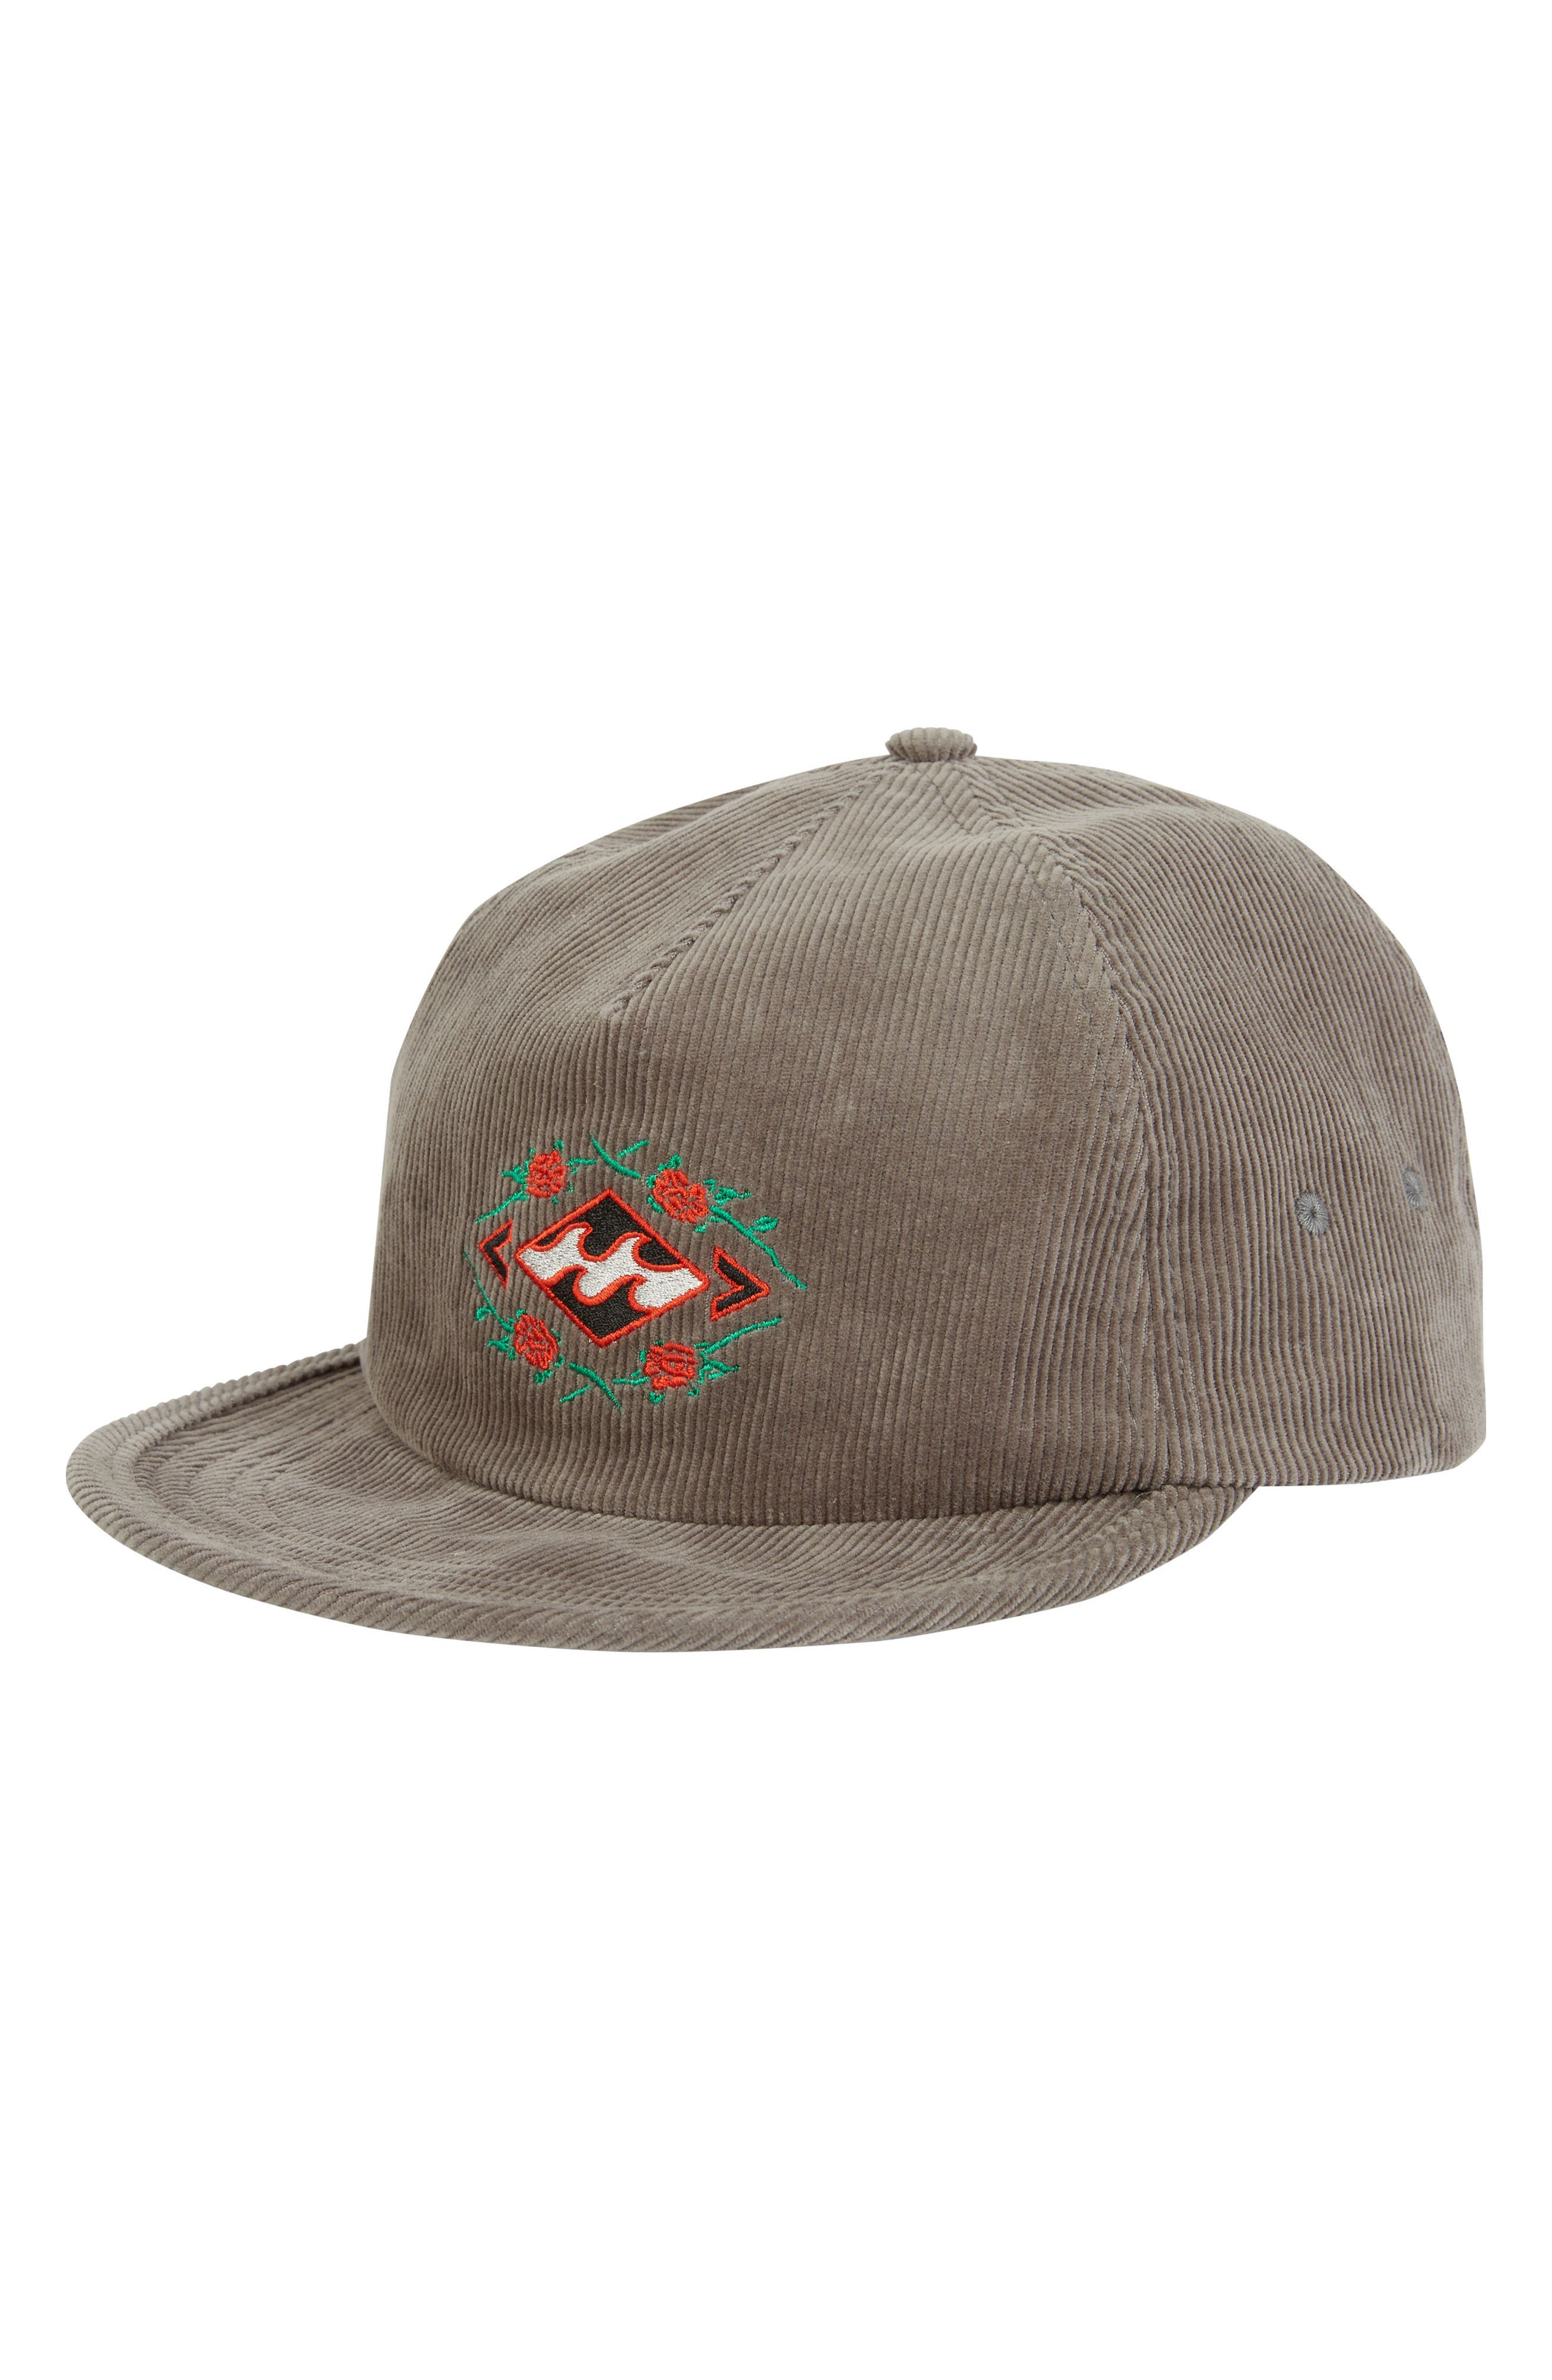 Reissue Corduroy Baseball Cap,                             Main thumbnail 1, color,                             PEWTER